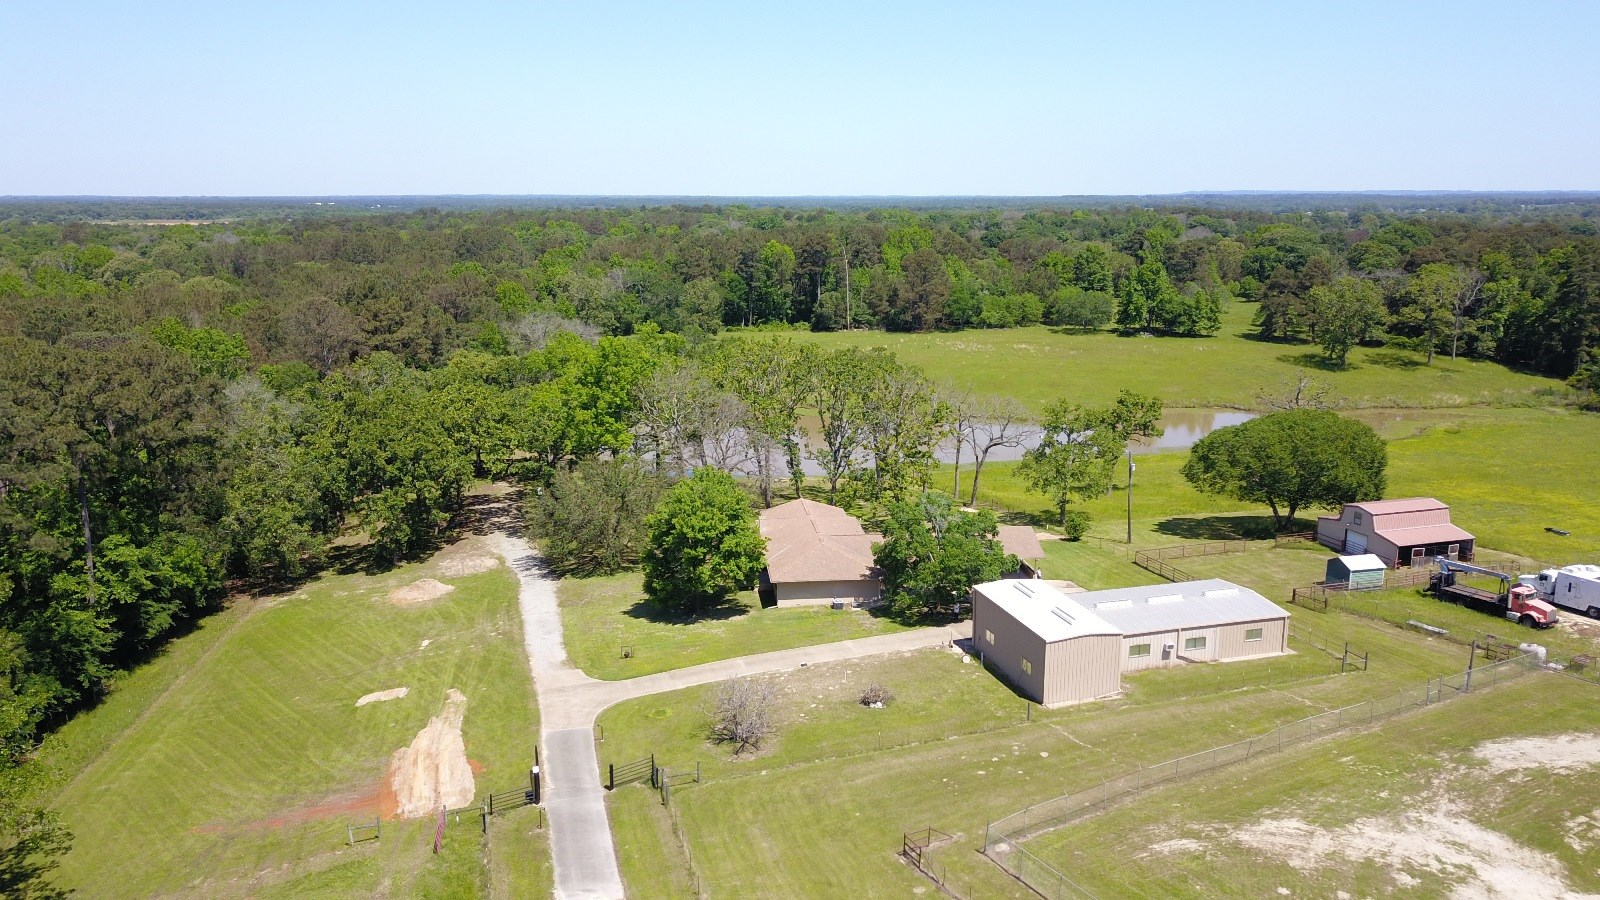 COUNTRY HOME & ACREAGE WITH POND FOR SALE IN EAST TX